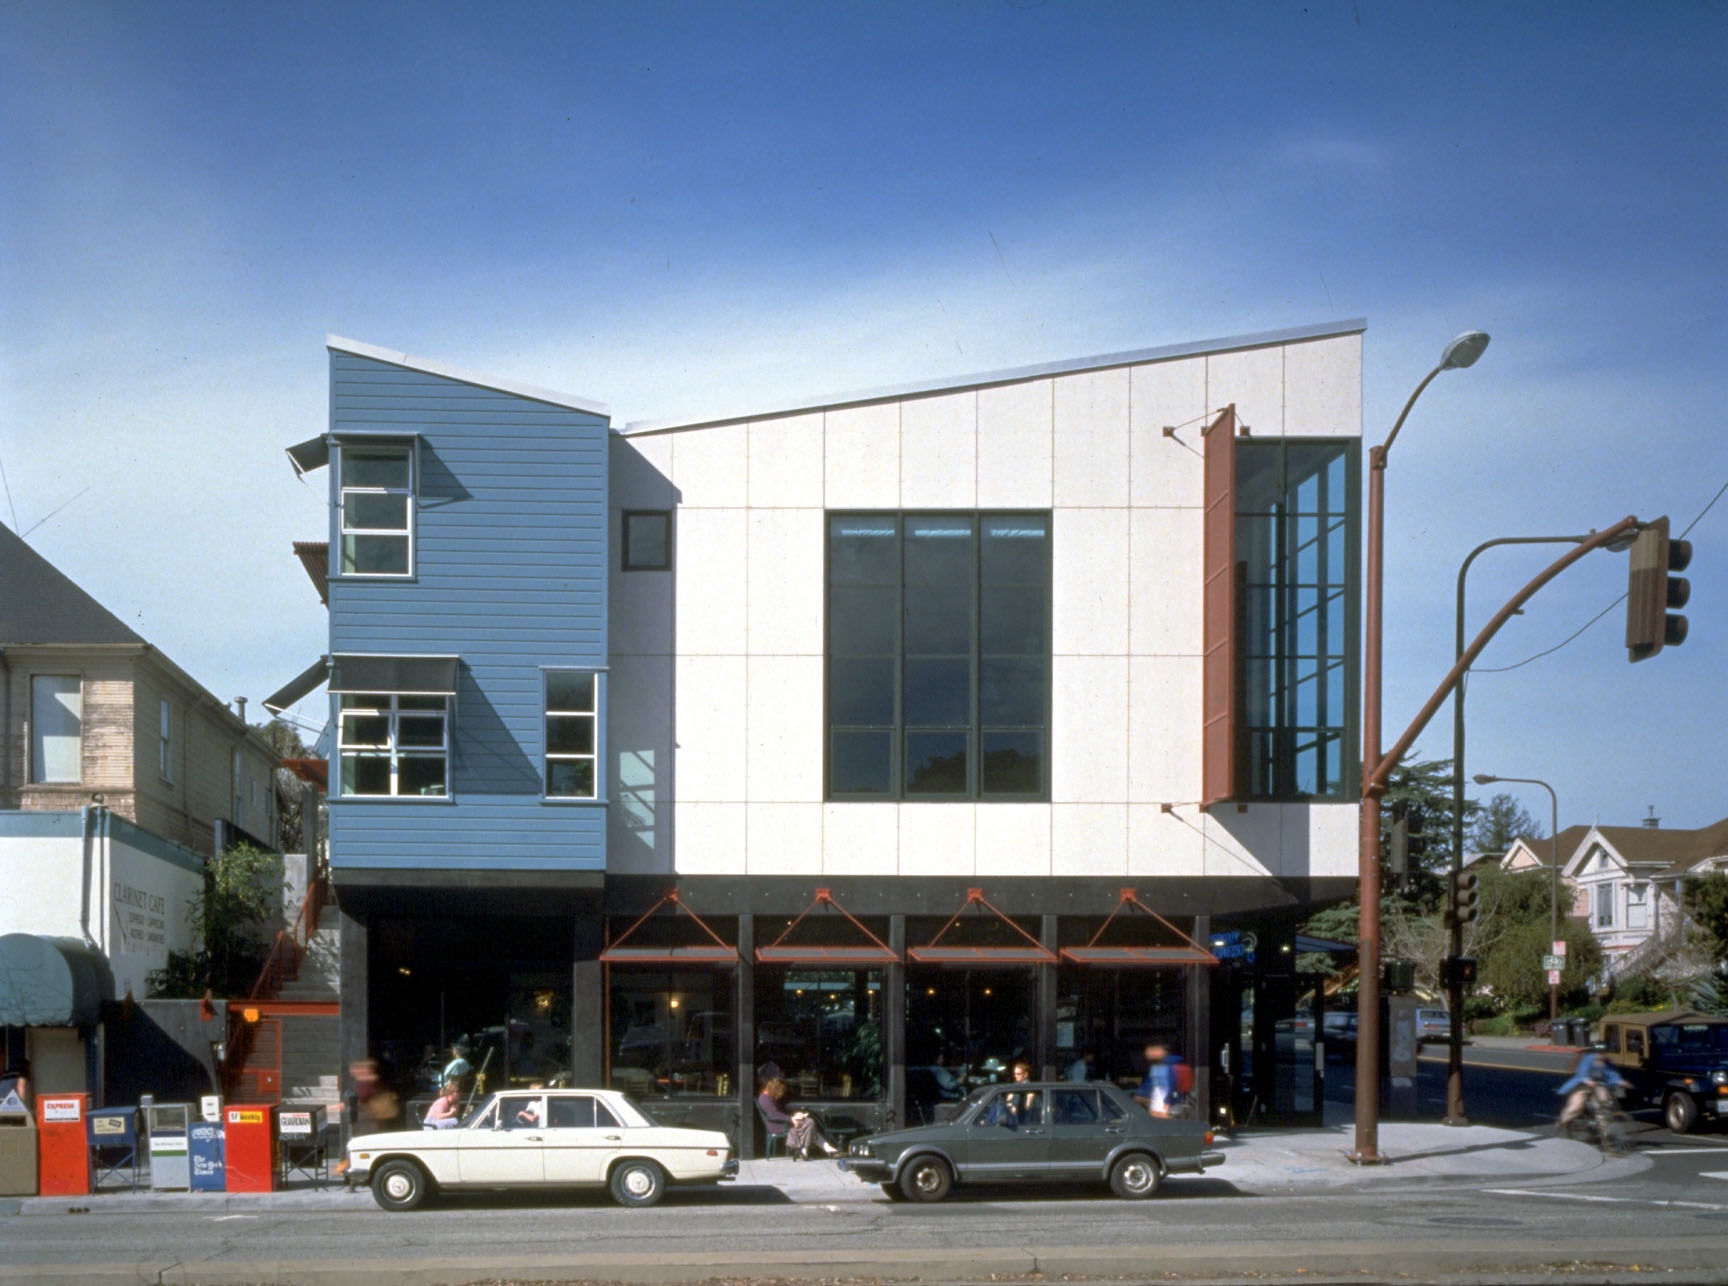 01 Tipping building-exterior-richard barnes-1996-52R.jpg